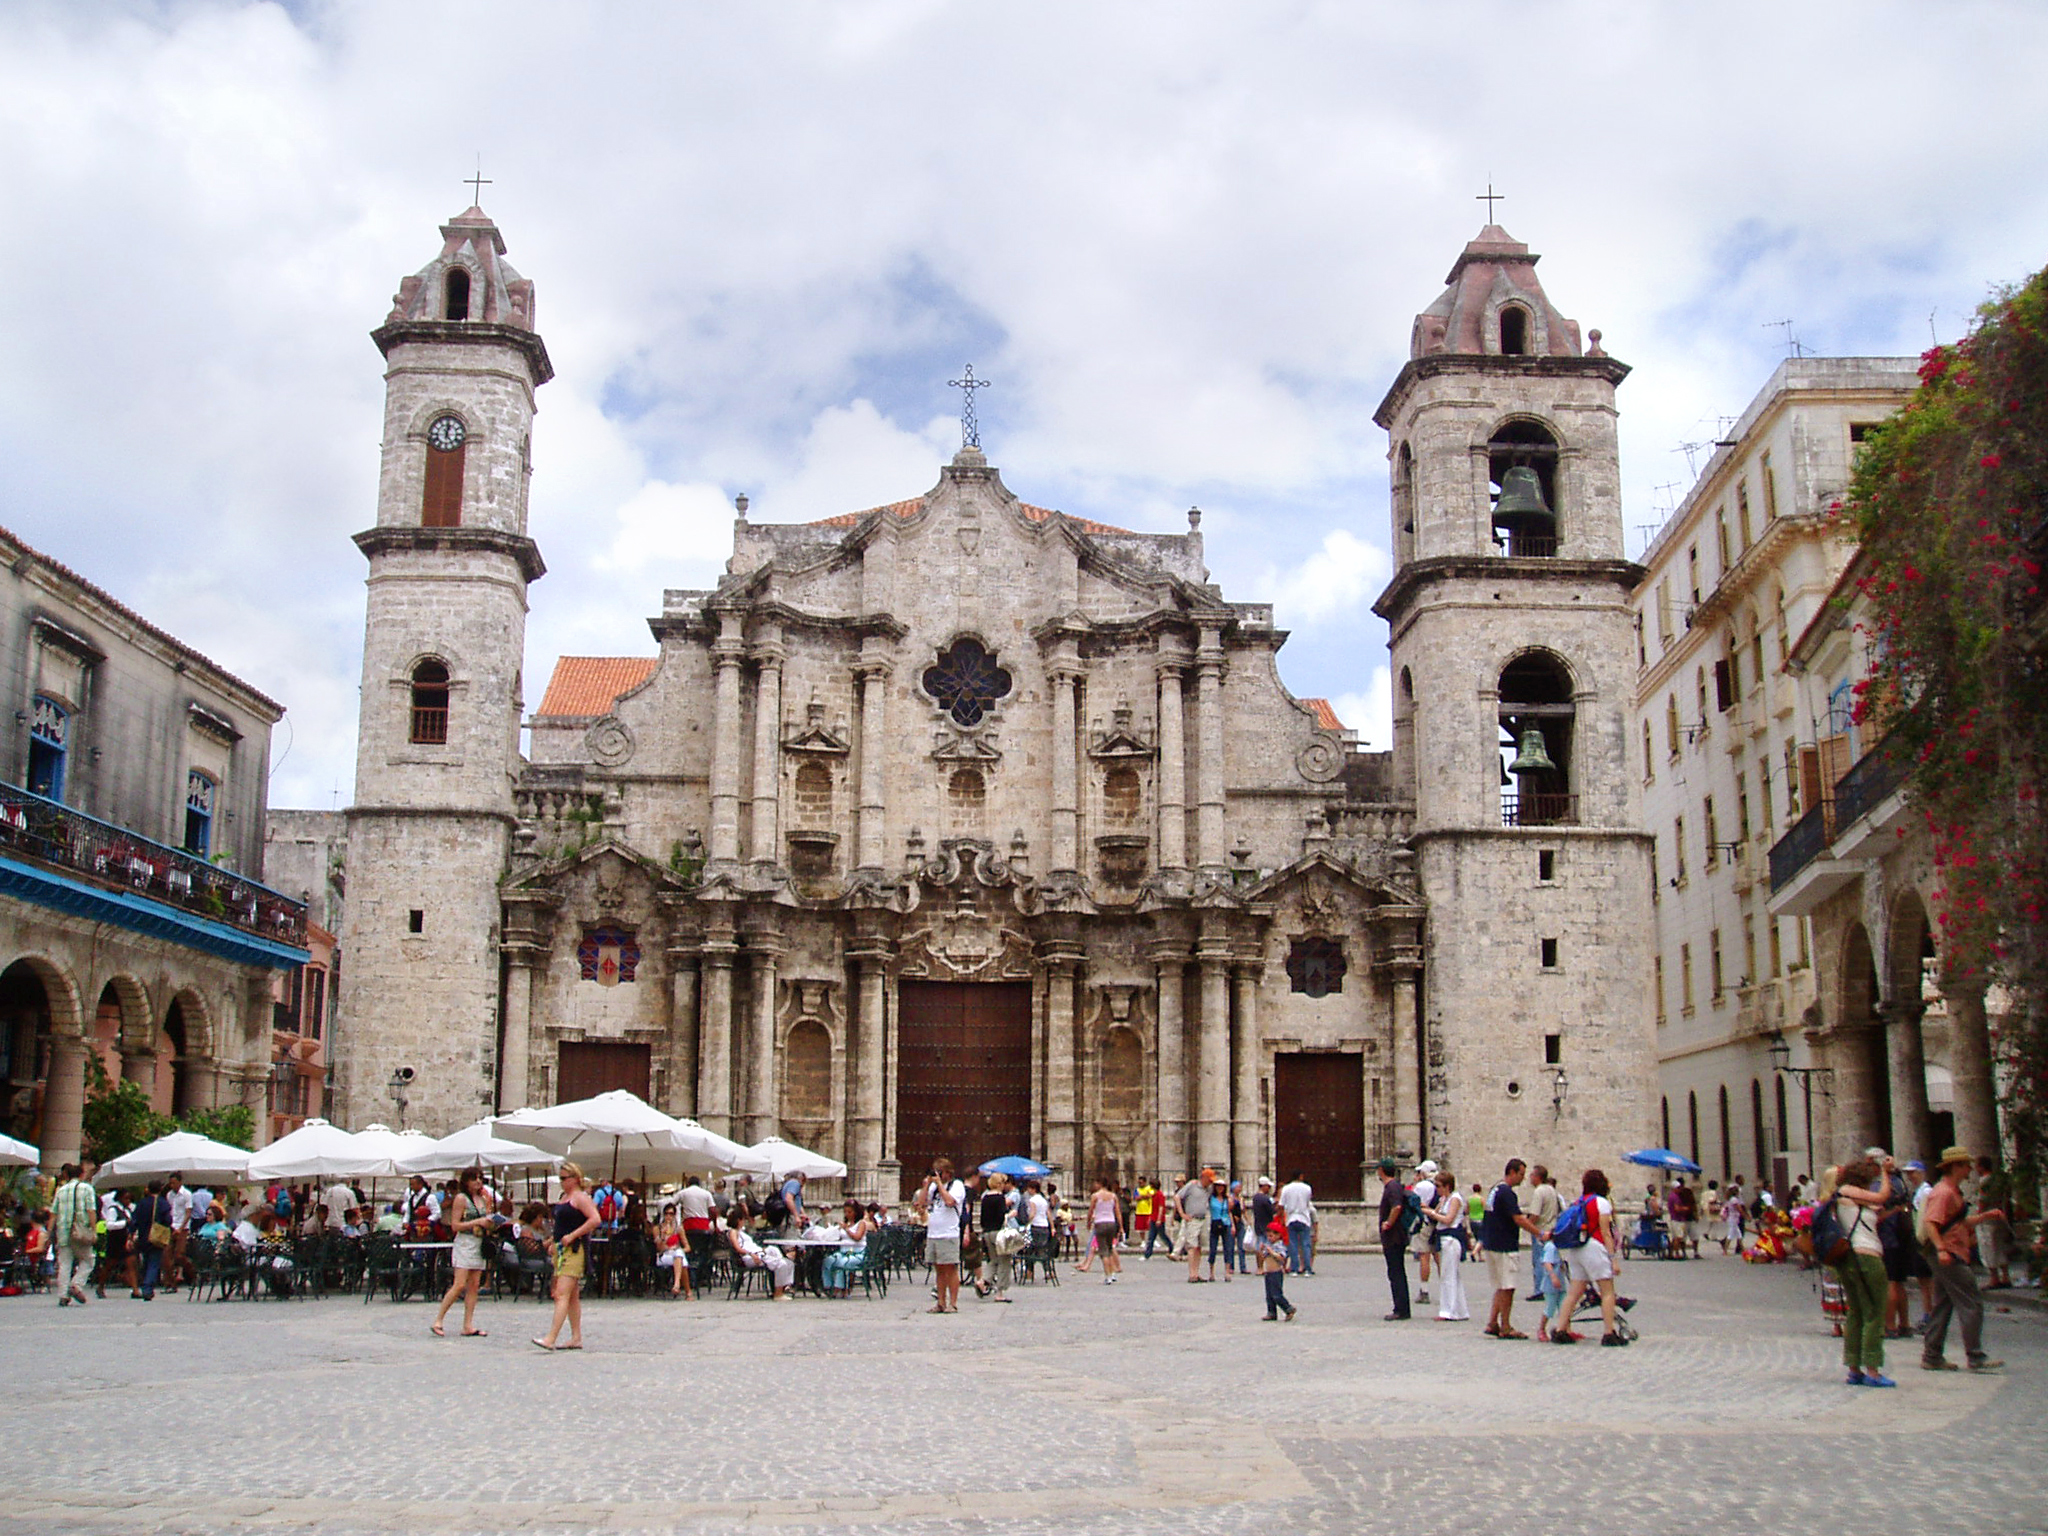 The historical places to visit in Havana look as amazing as this cathedral...!